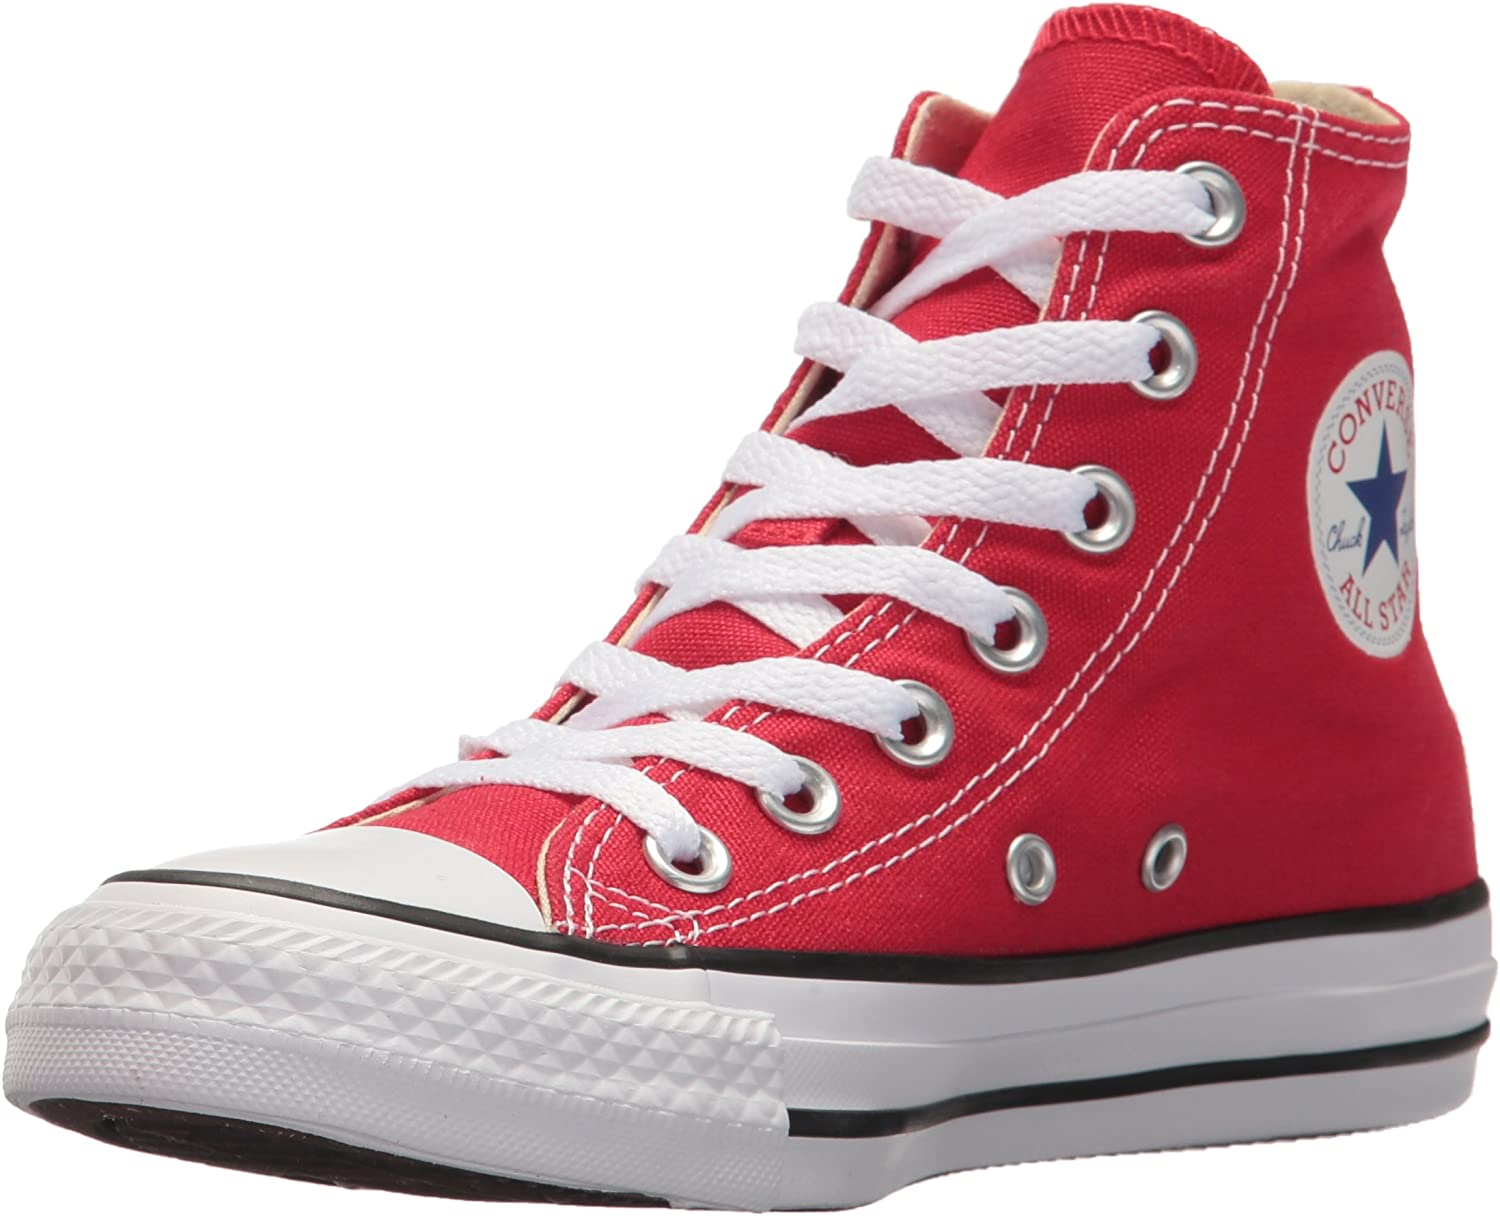 Converse InfantToddler Chuck Taylor All Star High Top